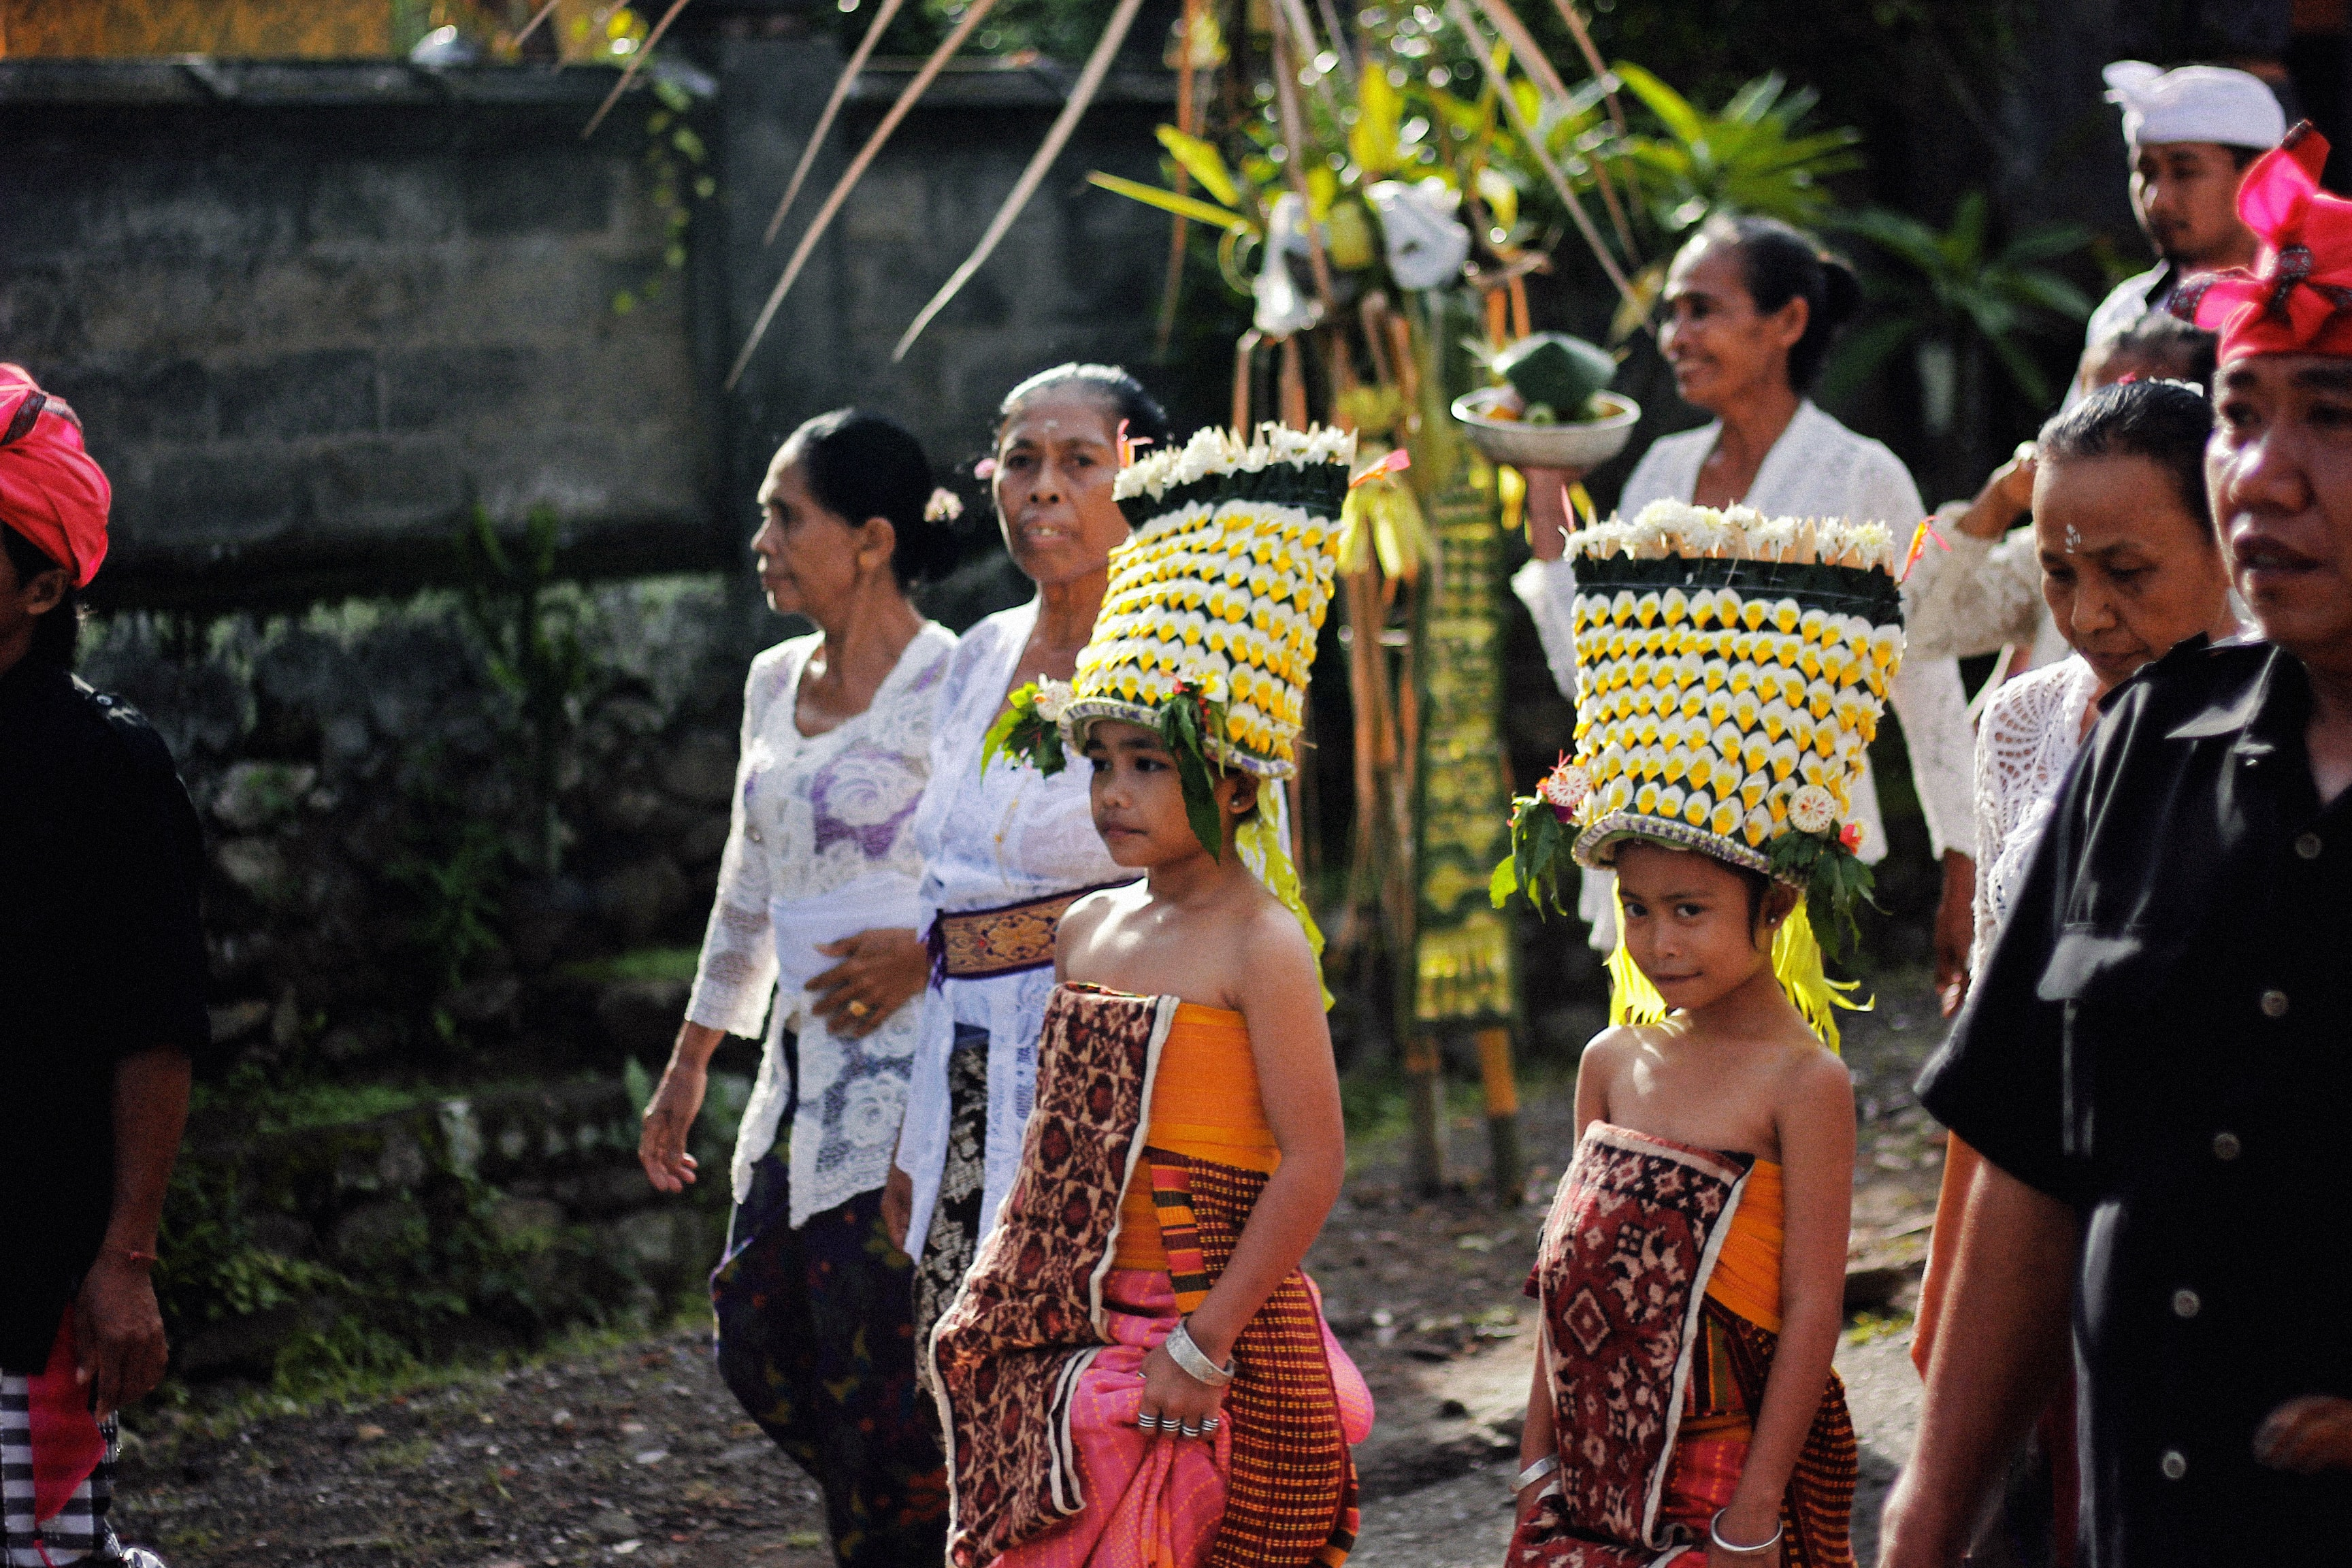 two girls wearing traditional attire parading on road with other people during daytime